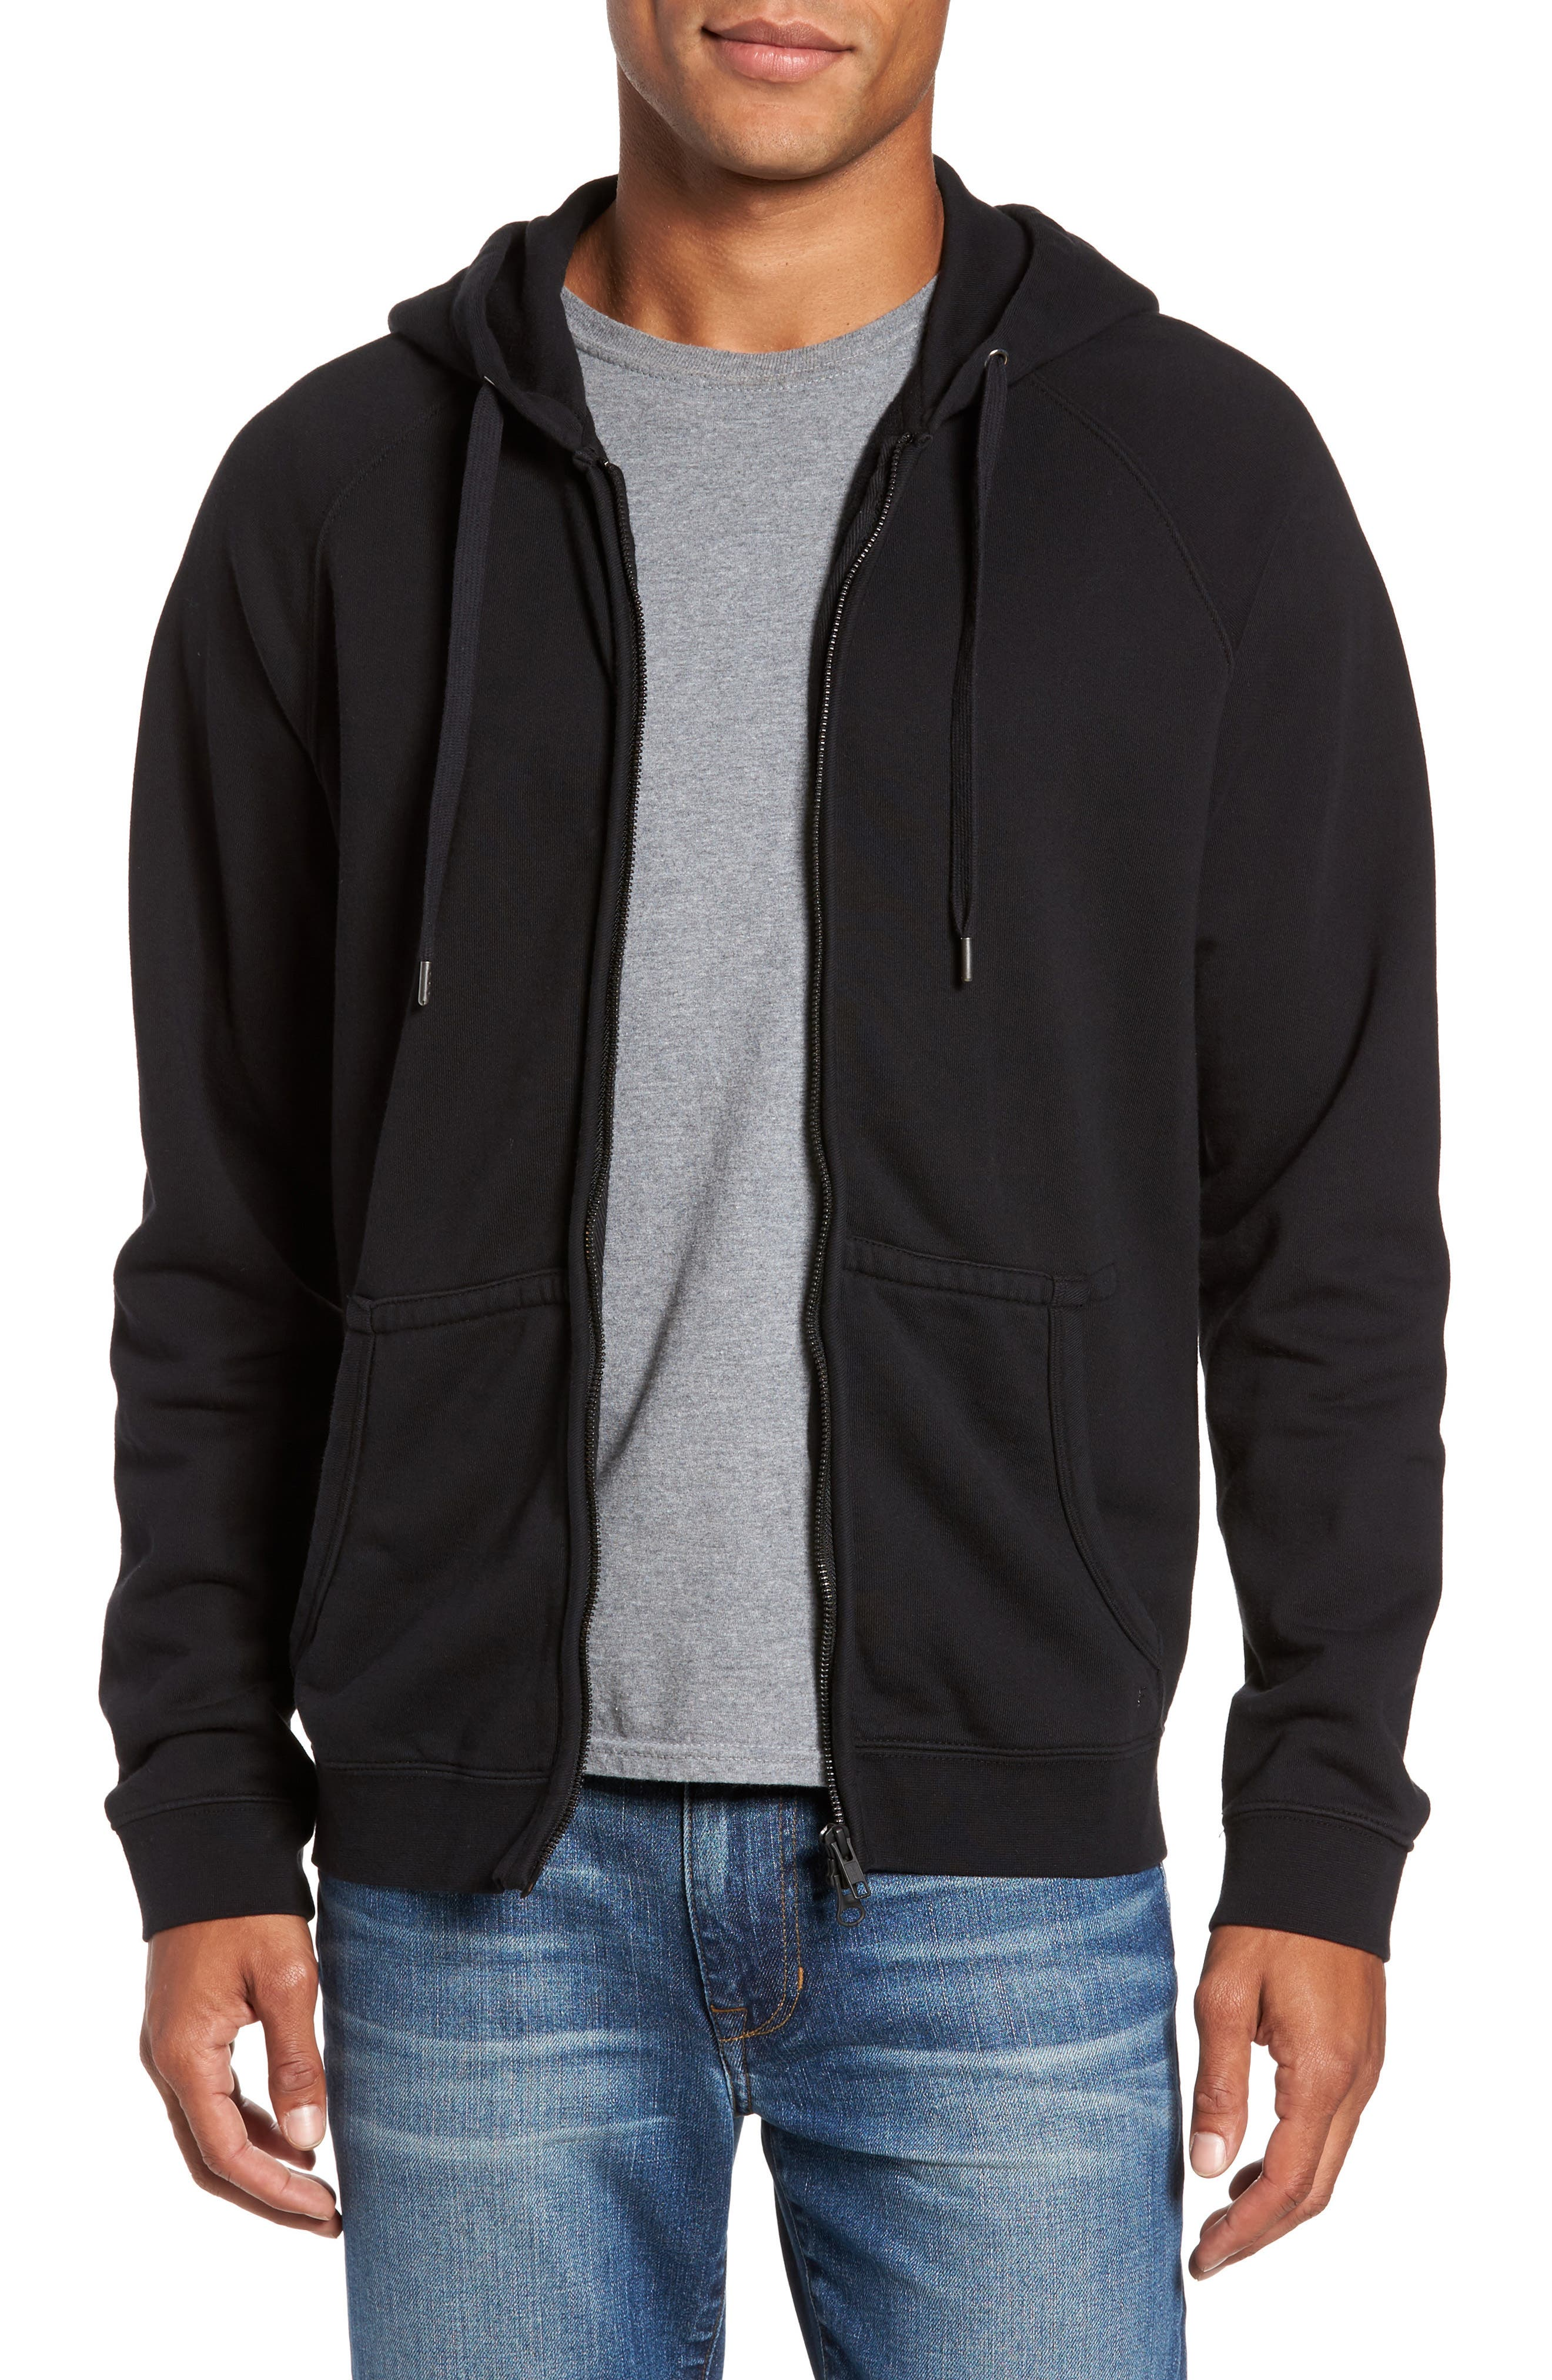 French Terry Zip Hoodie,                             Main thumbnail 1, color,                             001